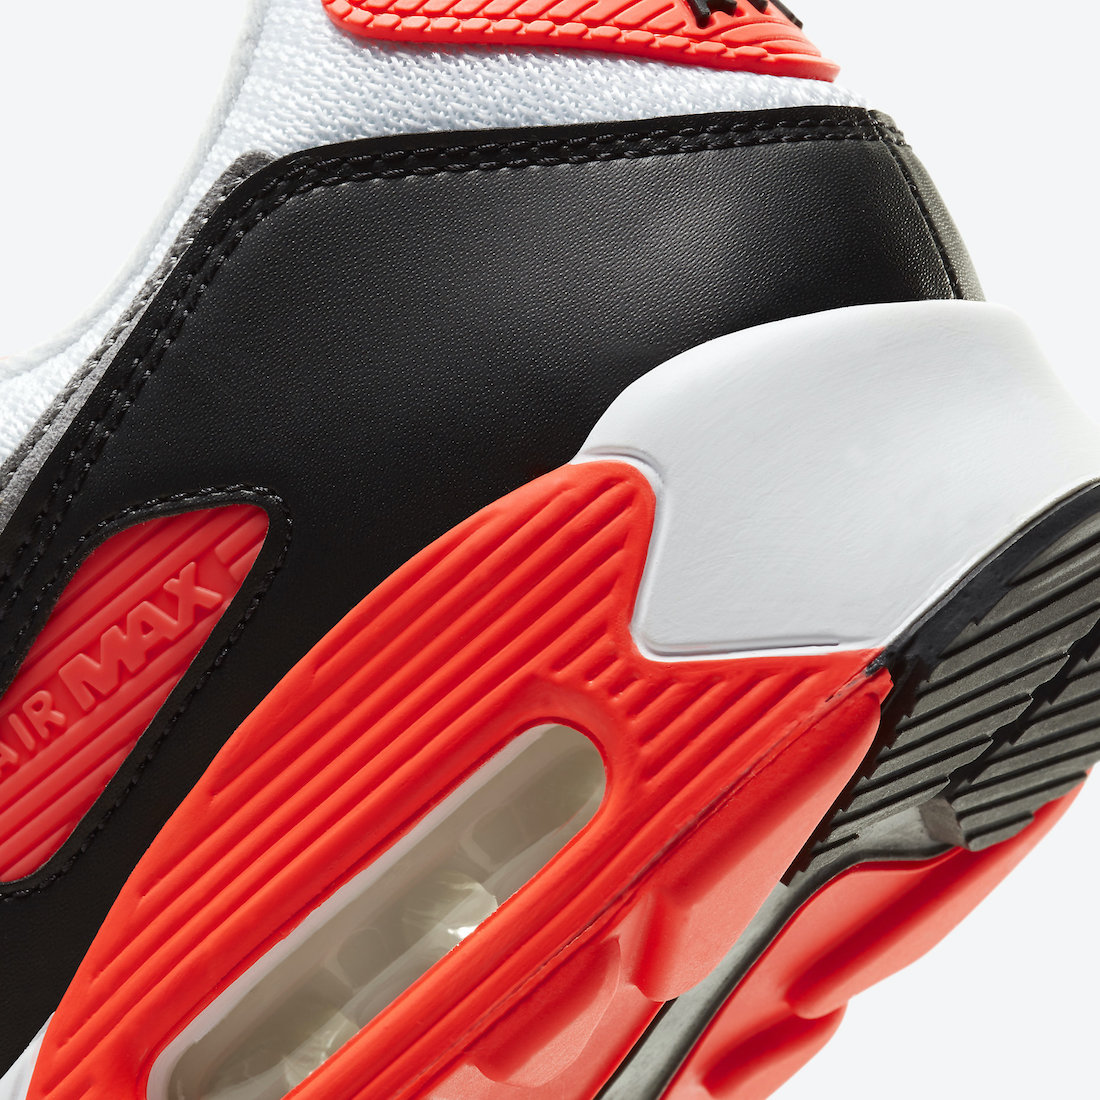 Nike-Air-Max-90-Infrared-CT1685-100-Release-Date-7